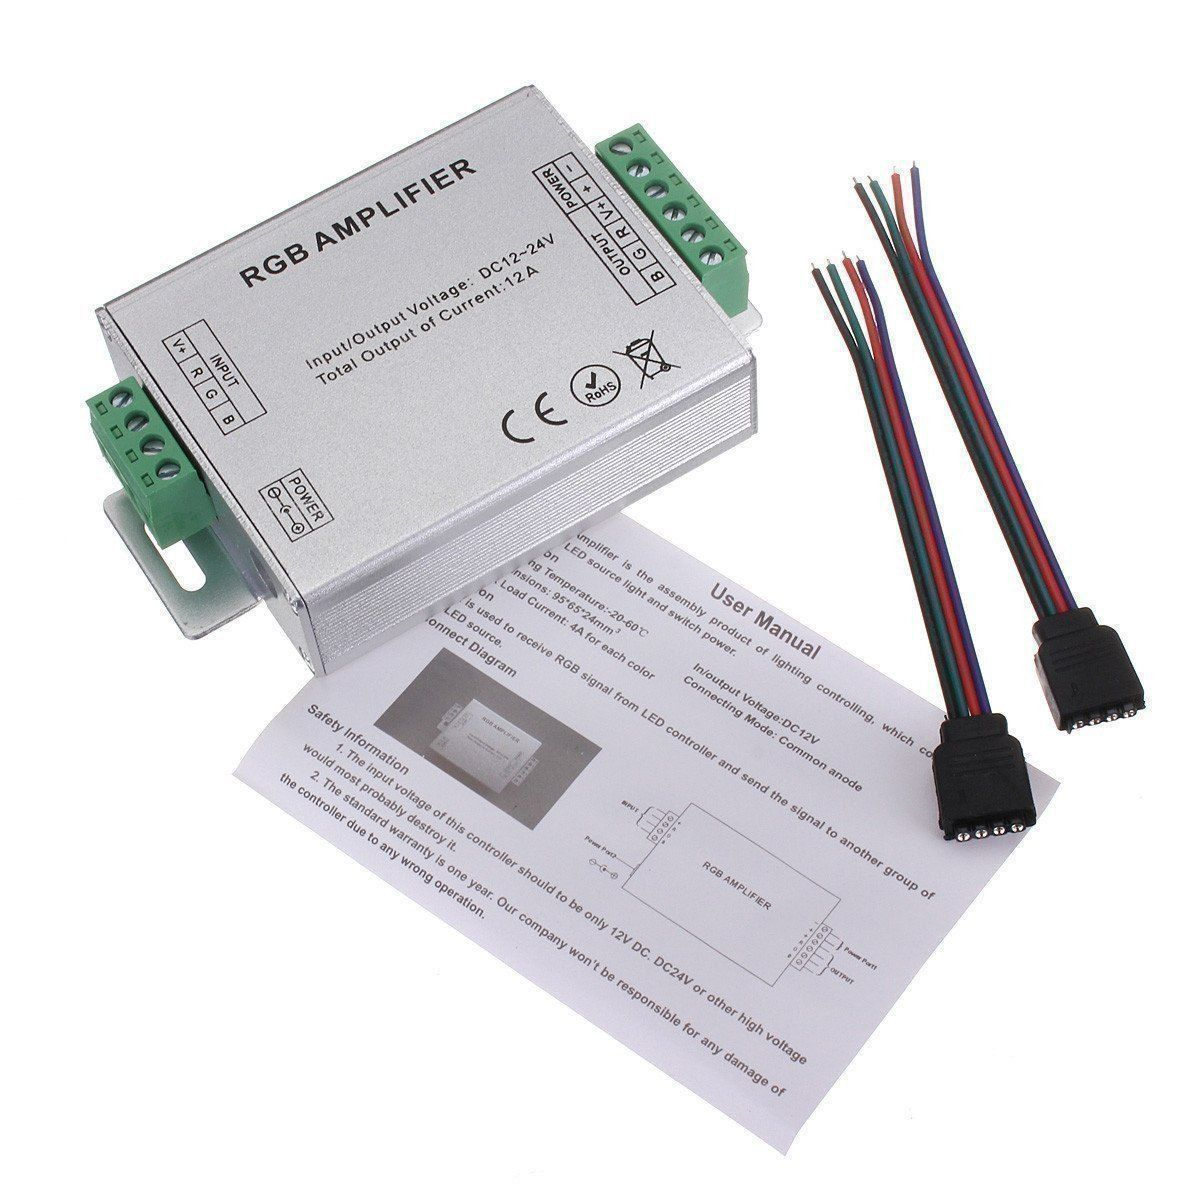 Rgb Smd 5050 Led Strips Light Signal Amplifier 12v 12a Products Wiring Diagram For